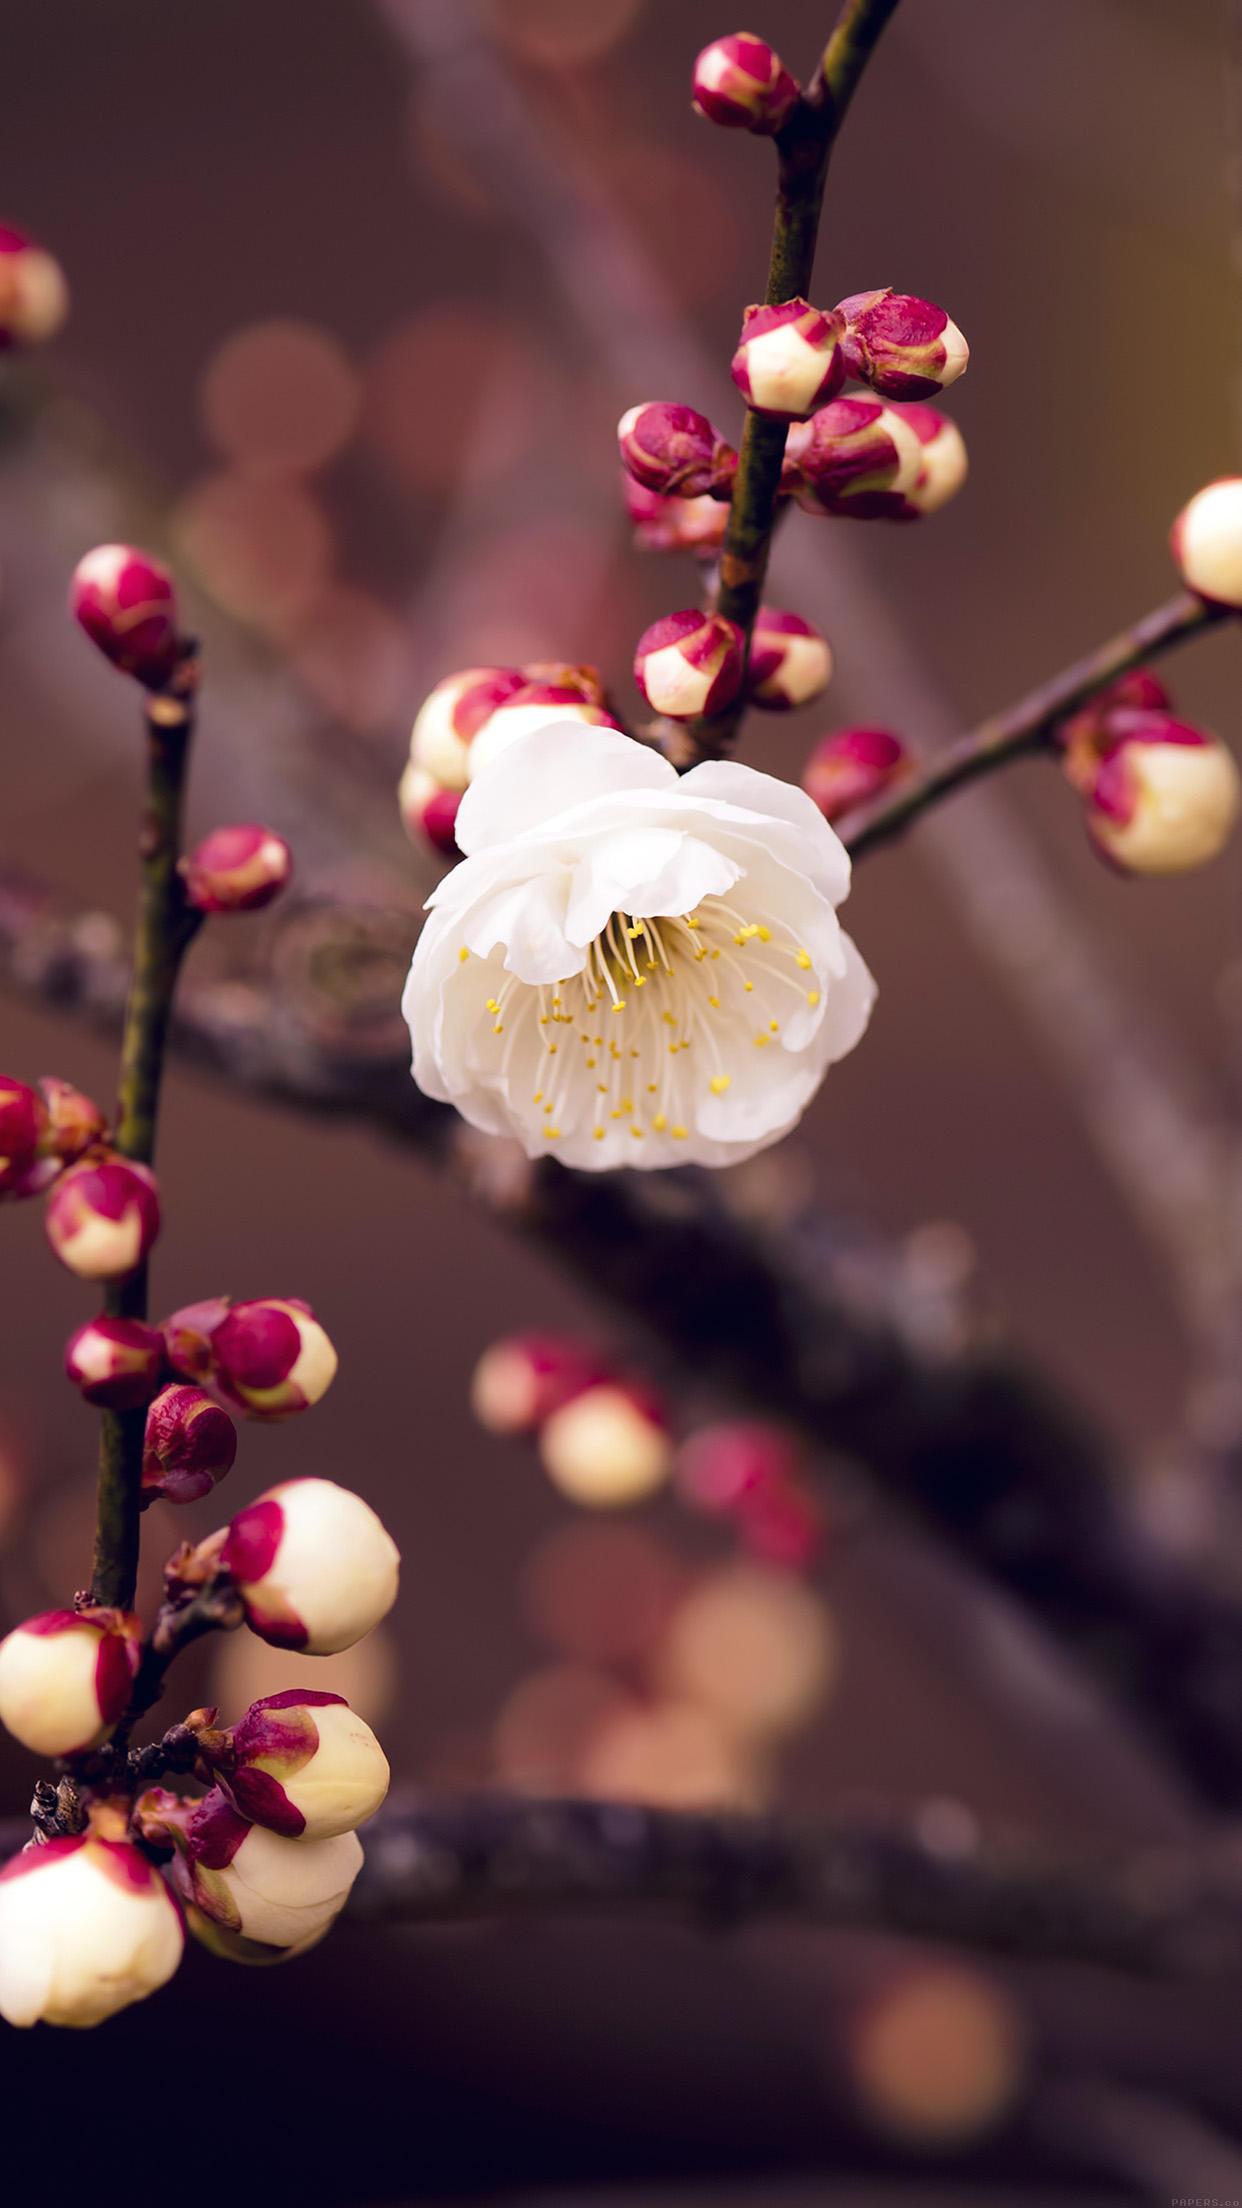 Fall Wallpaper Note 8 Mp15 Apricot Flower Bud Spring Nature Twigs Tree Papers Co